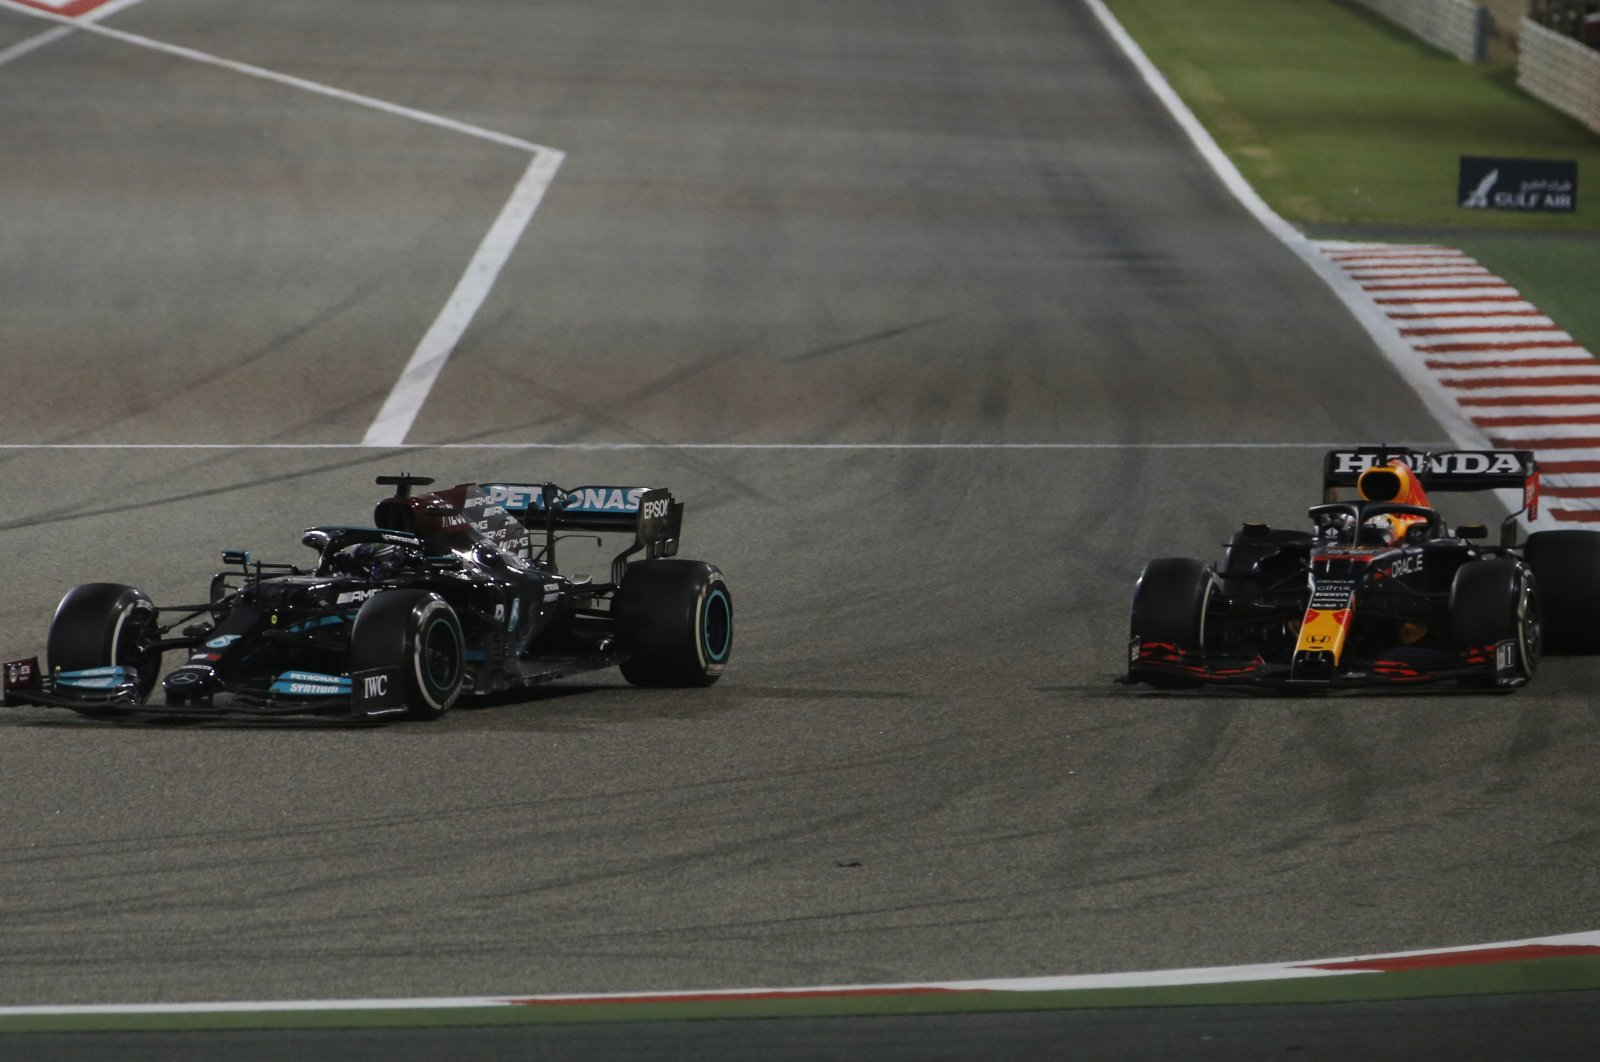 Mercedes' Lewis Hamilton (L) and Red Bull's Max Verstappen in action during Formula One Bahrain Grand Prix, Sakhir, Bahrain, March 28, 2021. (Reuters Photo)